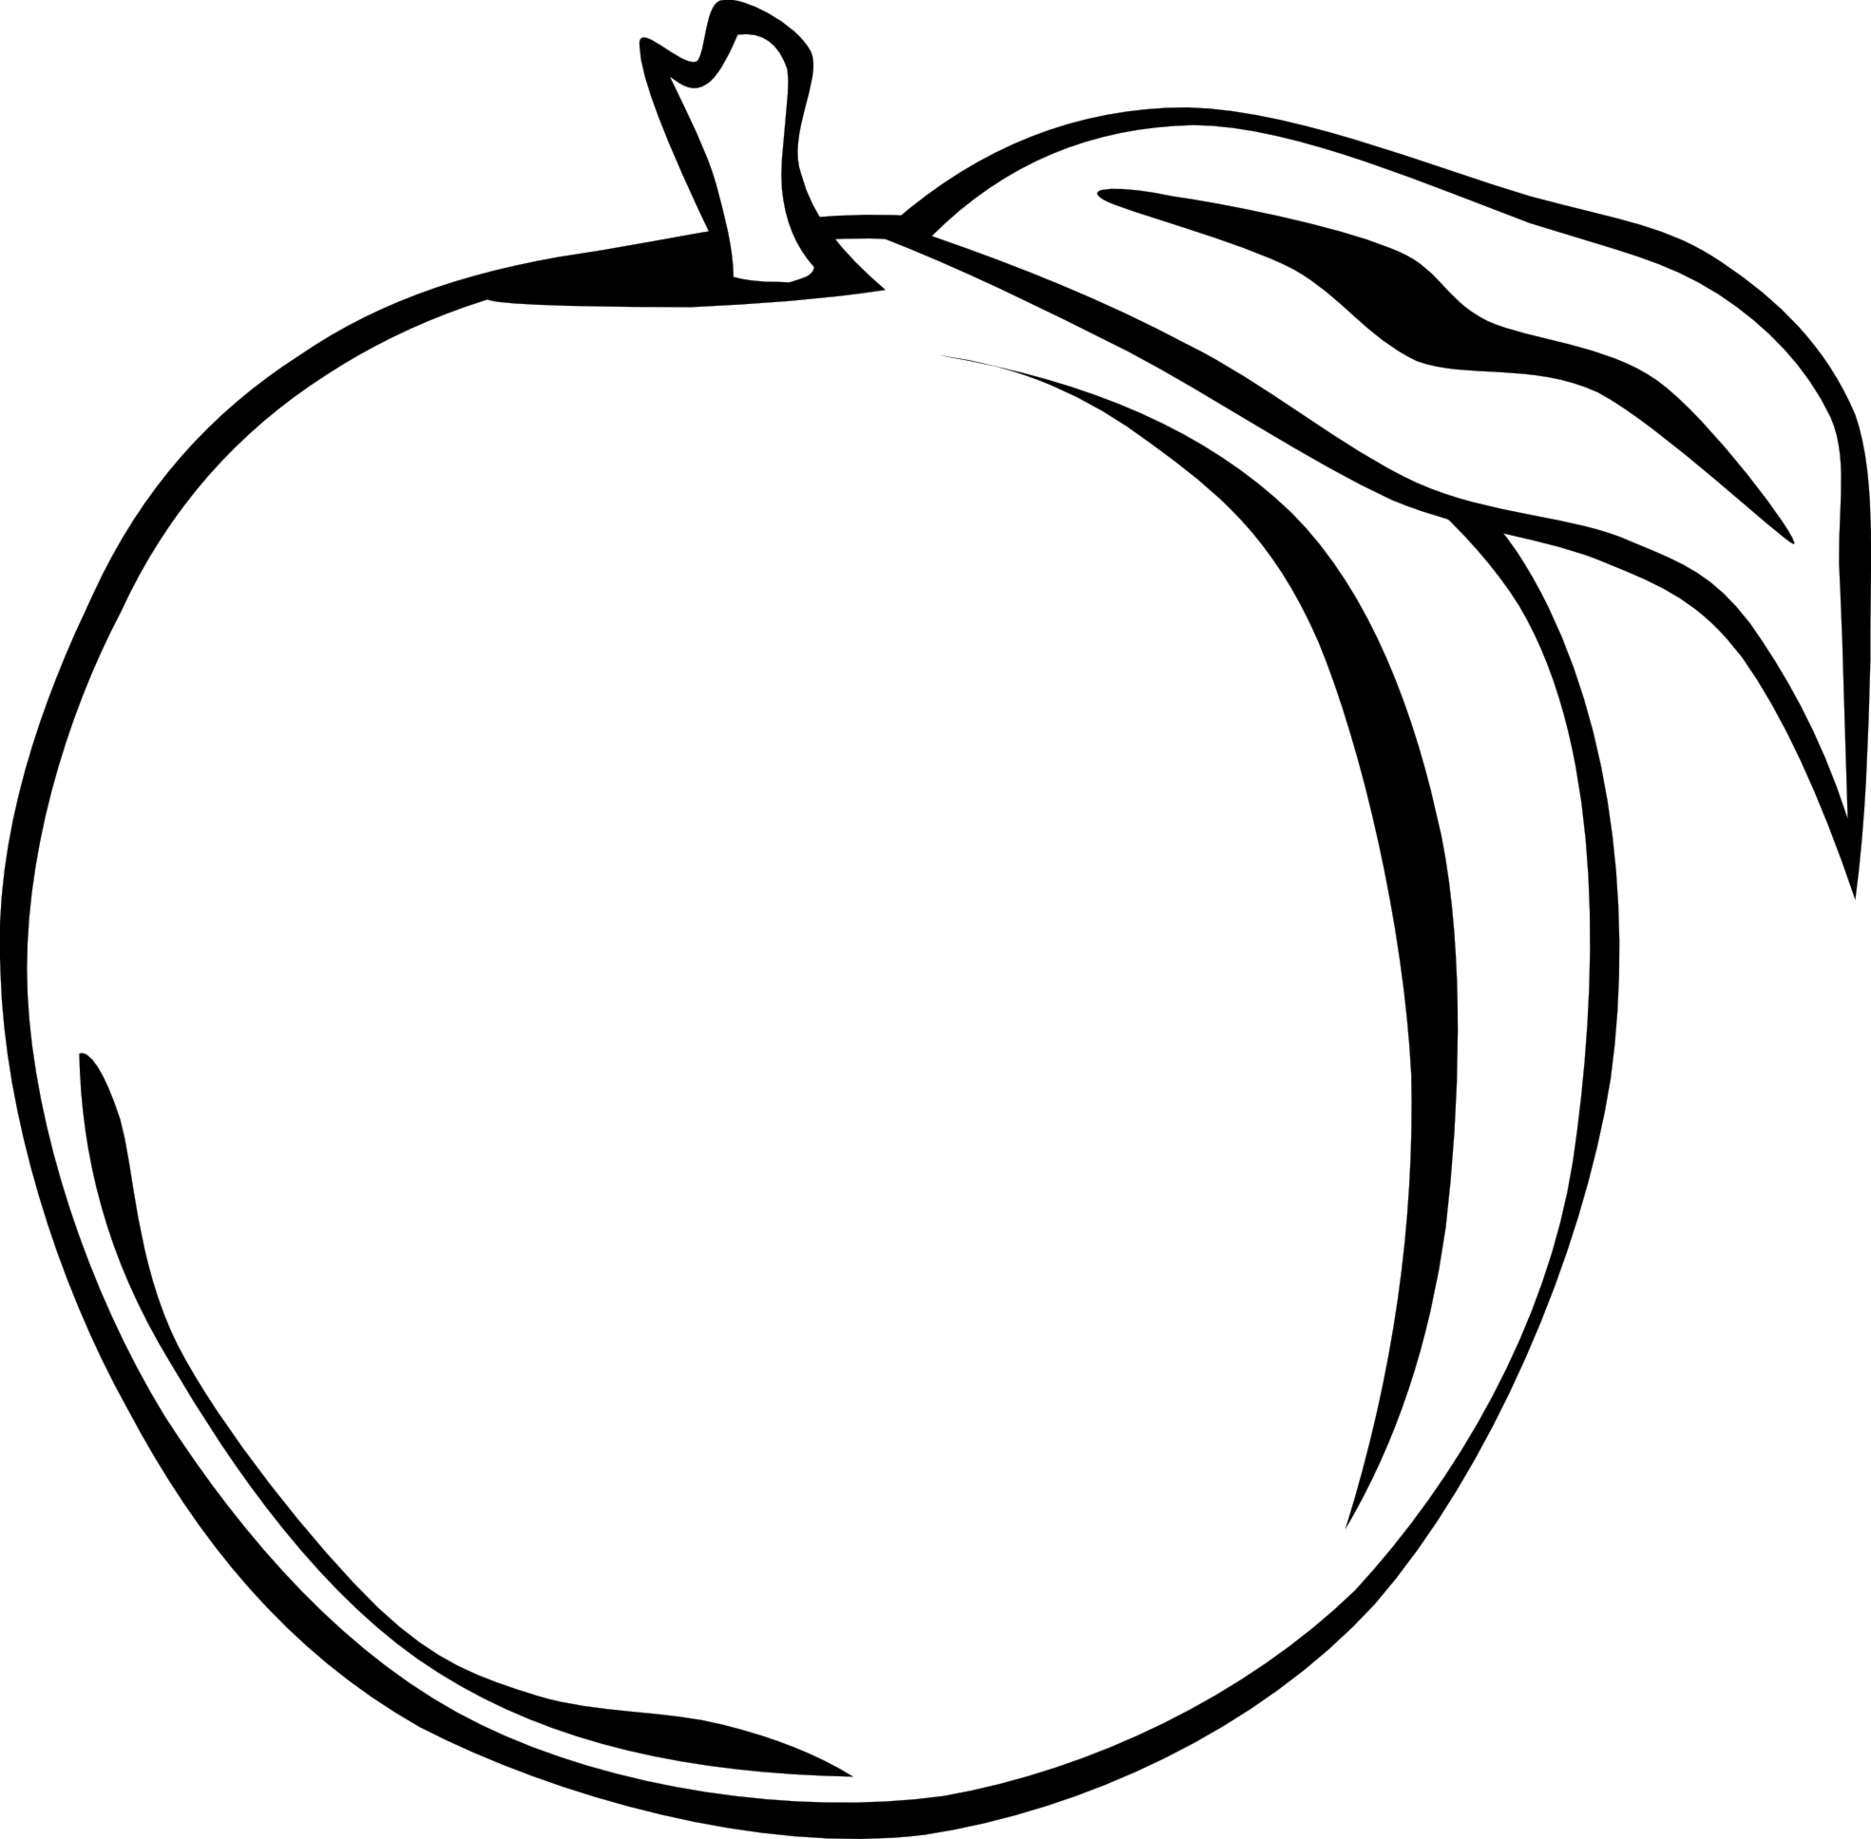 Vector orange black and white. Collection of fruit